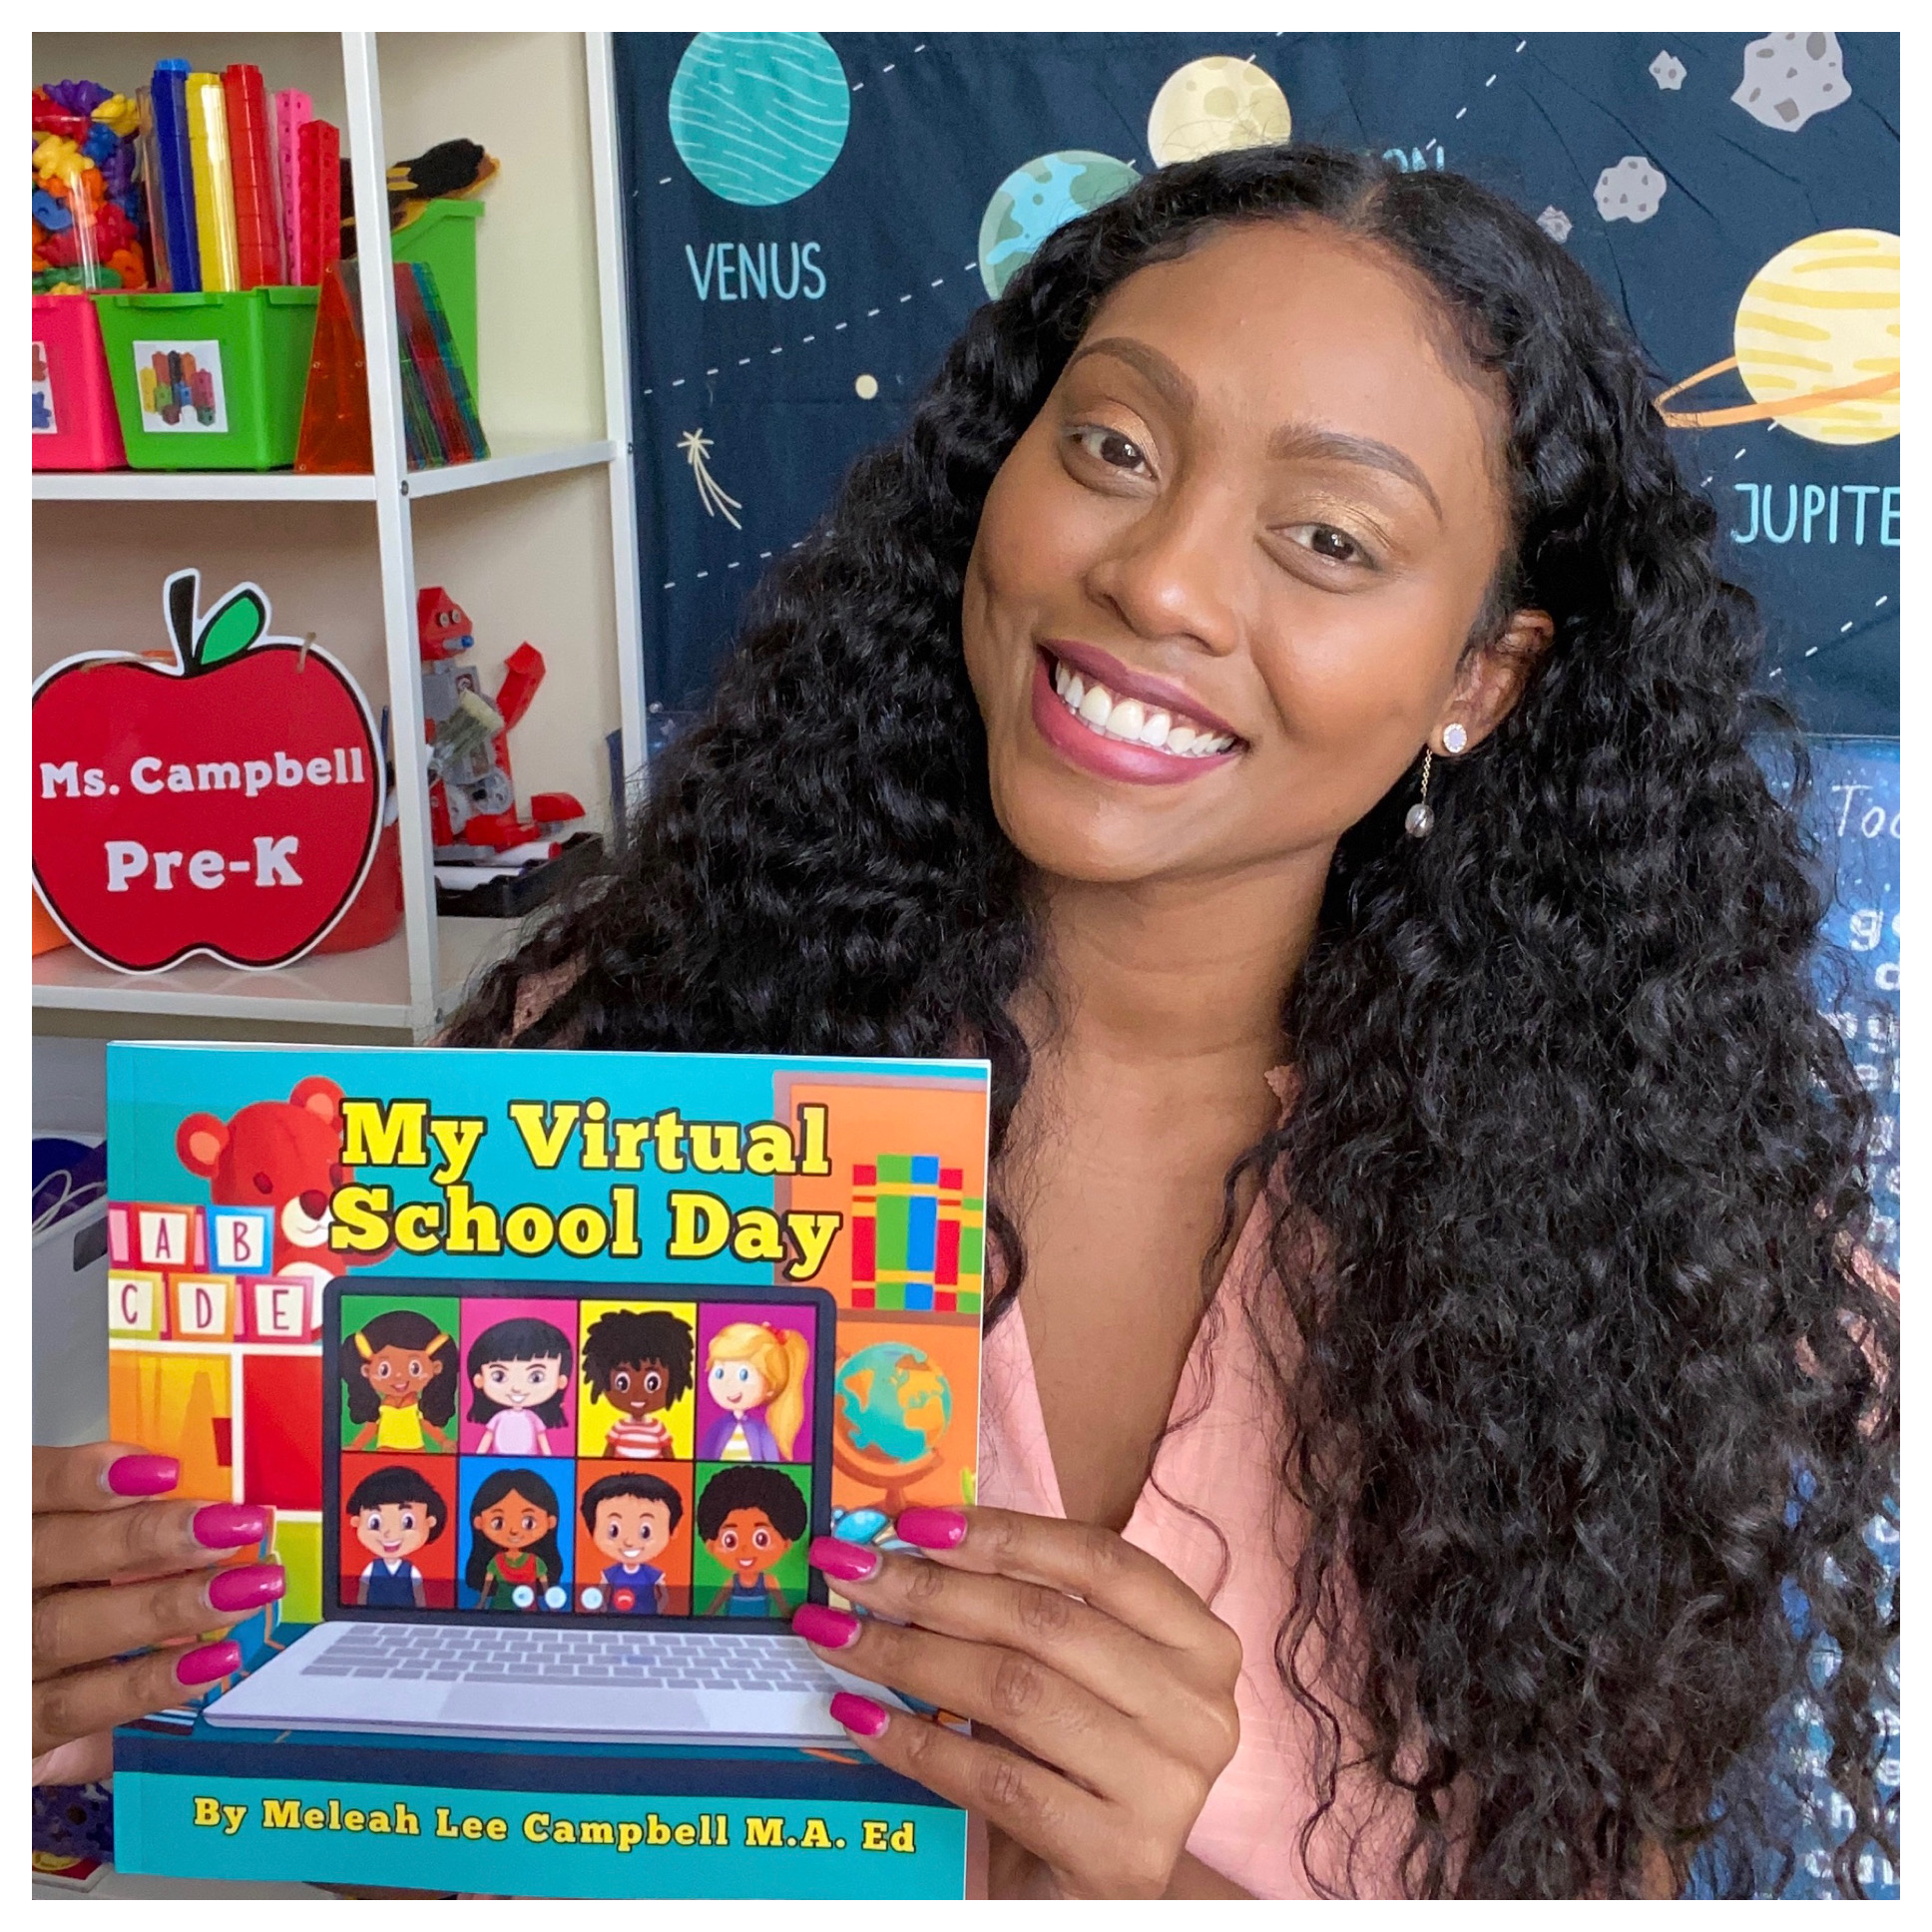 My Virtual School Day Campbell - Alum Authors Children's Book About Going to School Online